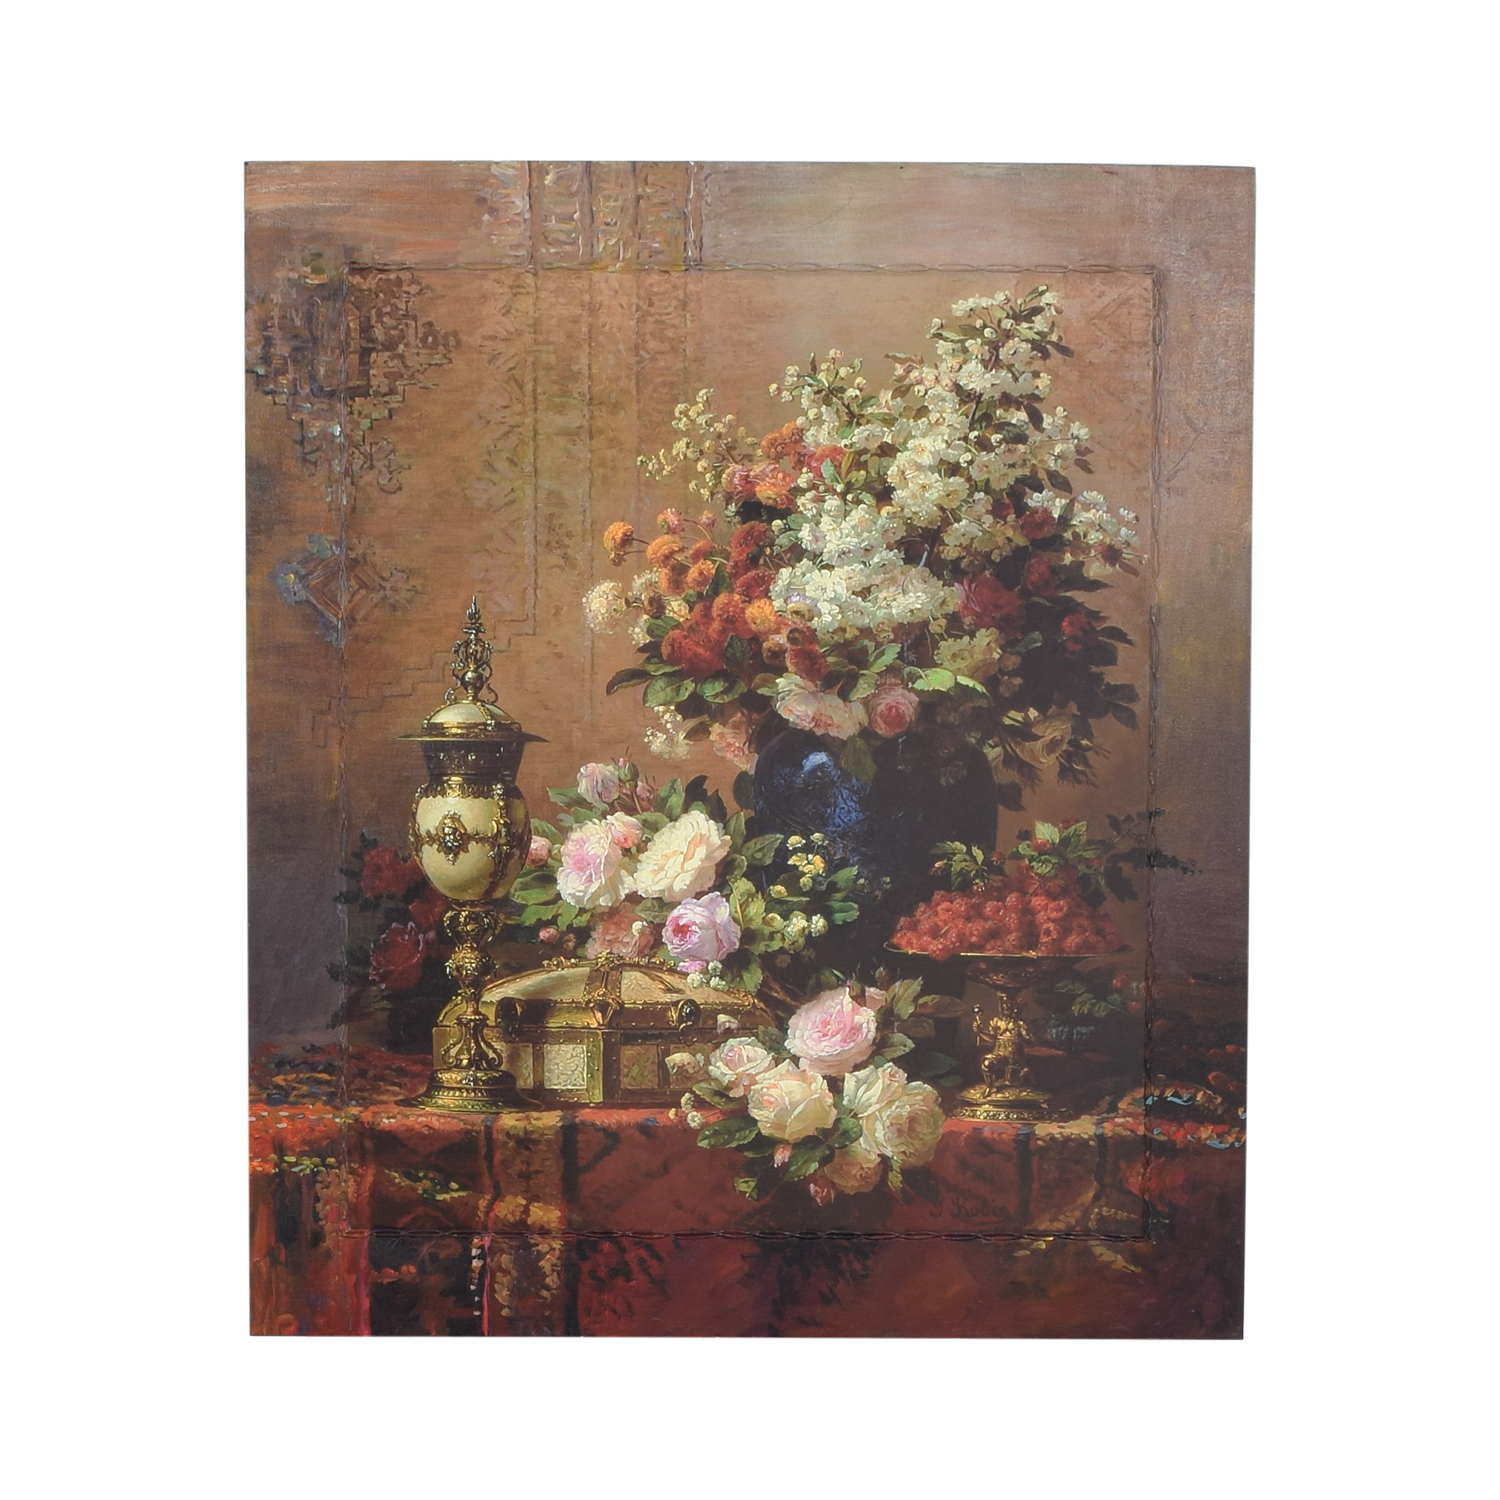 ABC Carpet & Home ABC Carpet & Home Still Life Print for sale